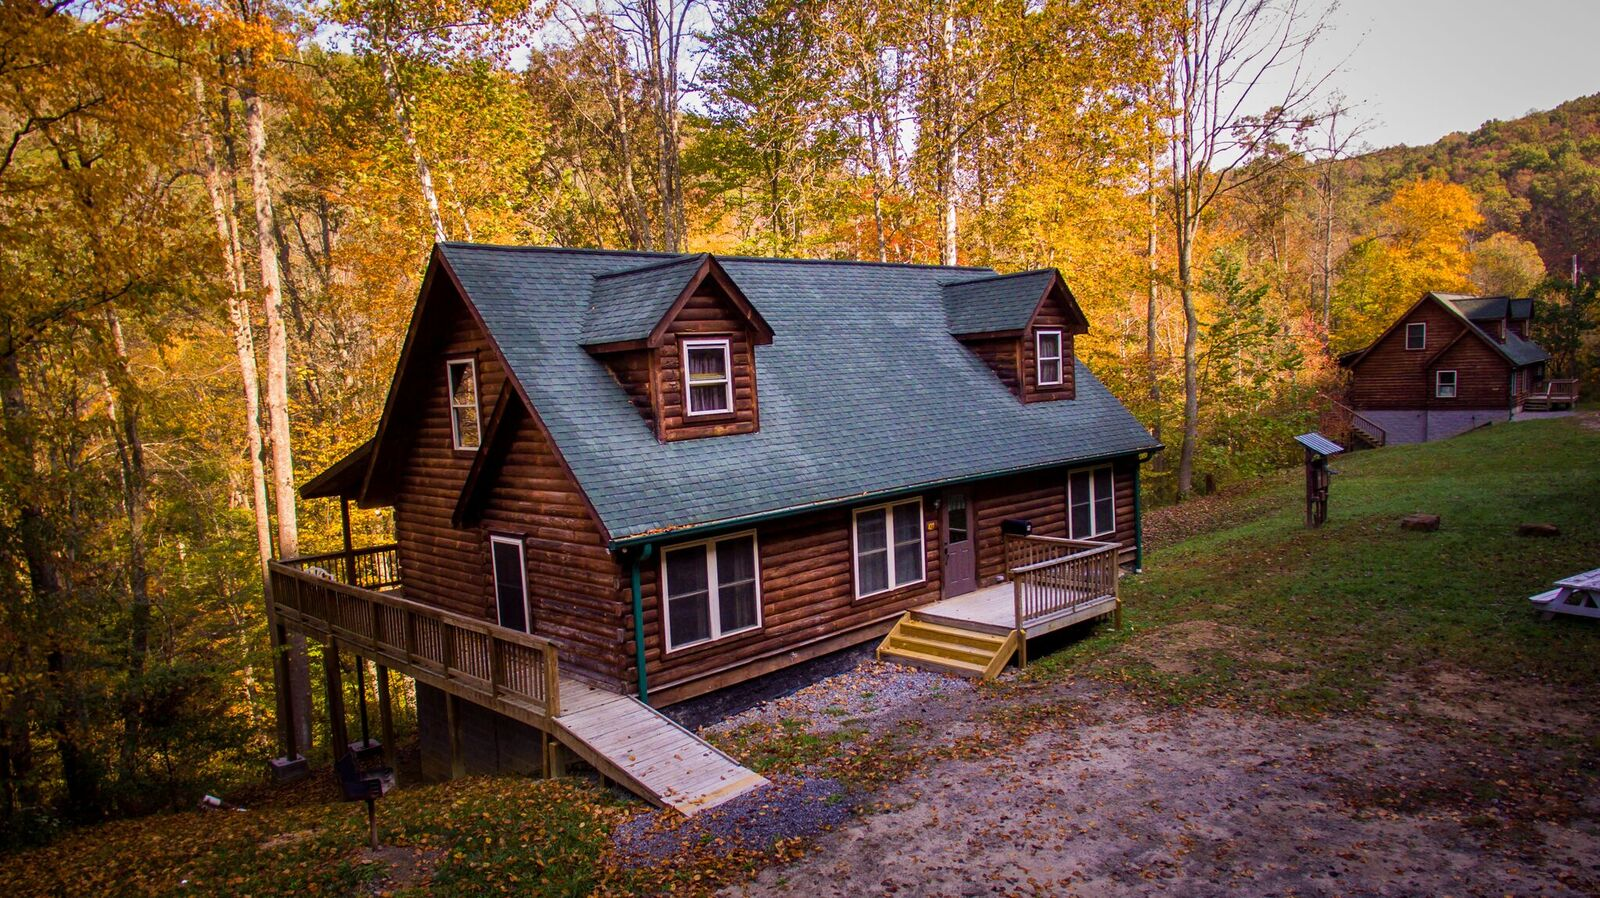 A stunning view of the Grey Fox Log Home